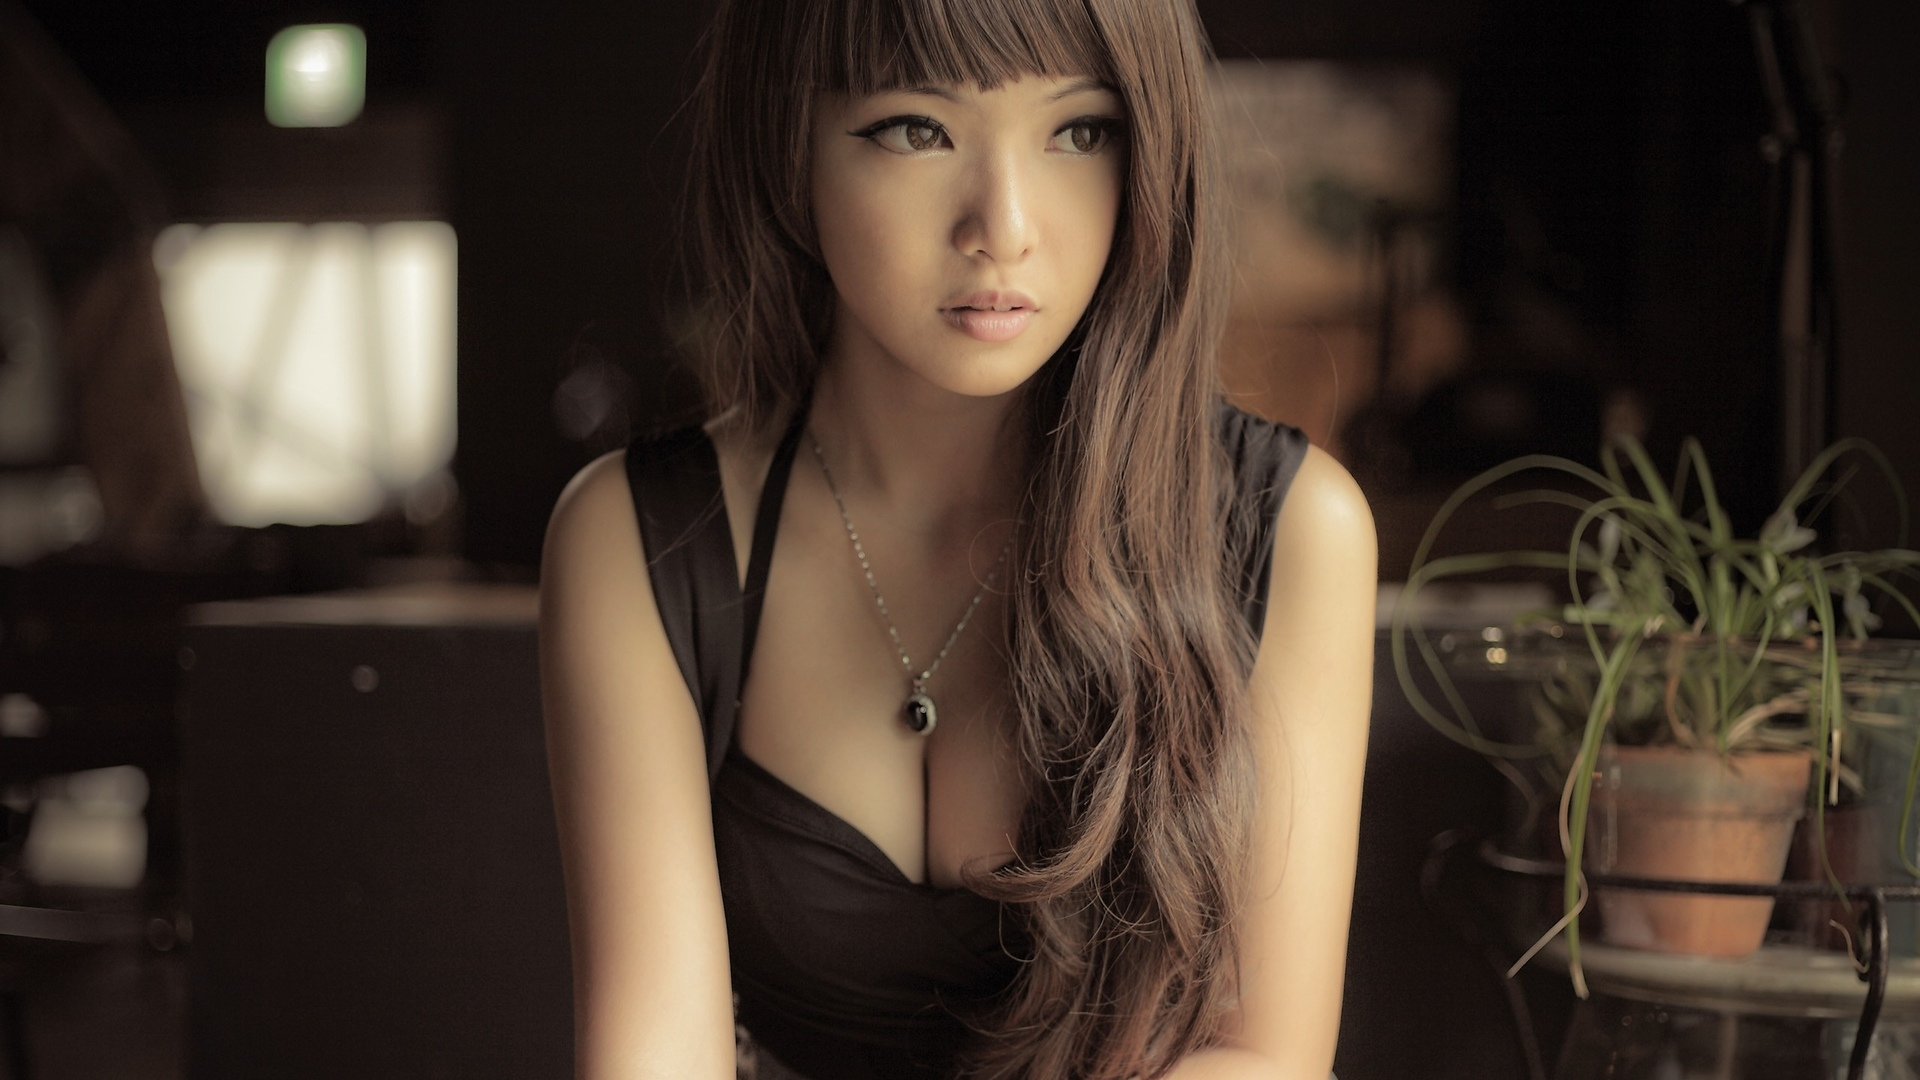 blossom single asian girls Cherry blossoms started the work of helping men and women meet for love and marriage from all over the world since over 40 years ago, and for this single reason blossomscom for dating asian women has it's edge over other online dating websites like hitwe, flirchi and others.